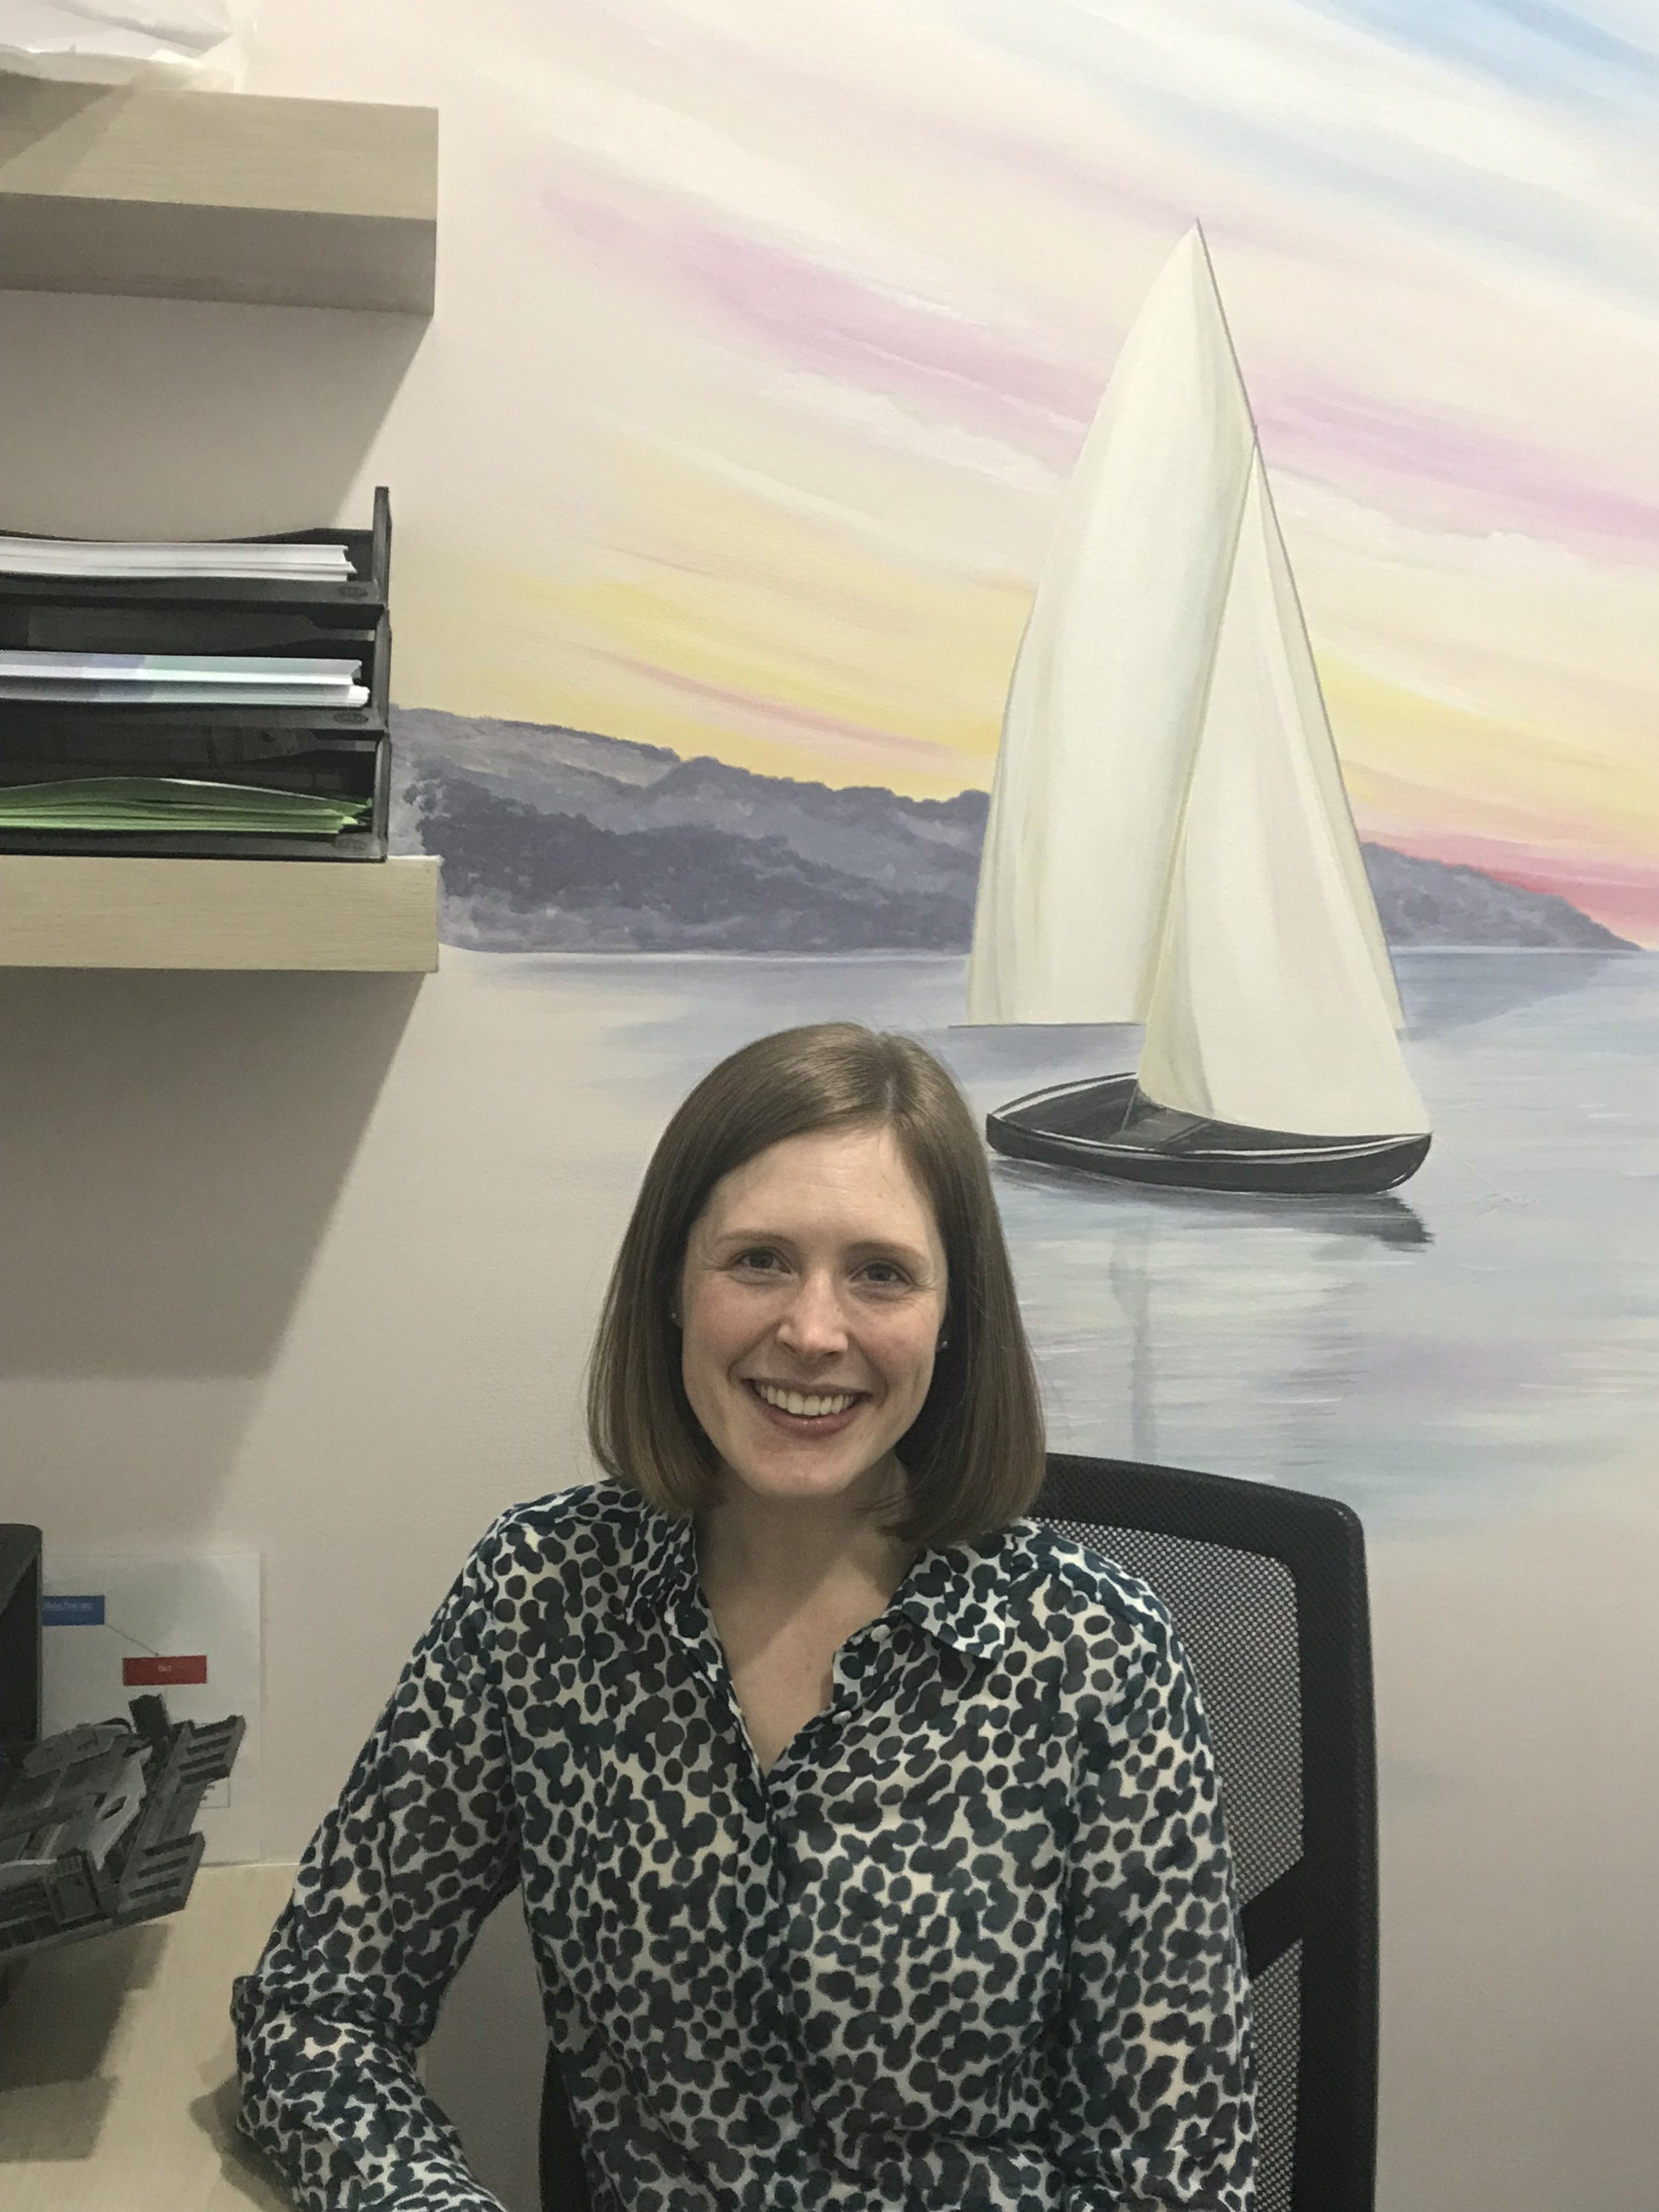 Dr Emily Hunter - B.Sc (Advanced) (USyd) M.B.B.S (USyd), Diploma of Obstetrics and Gynaecology, Diploma of Child Health F.R.A.C.G.P, Family Planning NSW Sexual and Reproductive Health CertificateEmily completed her medical degree at the University of Sydney in 2008. She also has a Bachelor of Advanced Science from the same institution, with majors in Biochemistry and Geography. Emily trained at several hospitals as a junior doctor, including Westmead Hospital and the Children's Hospital at Westmead, before entering General Practice. Emily has postgraduate qualifications in Obstetrics and Gynaecology, Child Health and Sexual and Reproductive HealthEmily enjoys the continuity of care that general practice offers, and she provides holistic care. She has special interests in paediatrics, women's health and preventative medicine but loves all aspects of general practice. Dr Hunter returned from maternity leave in May 2019